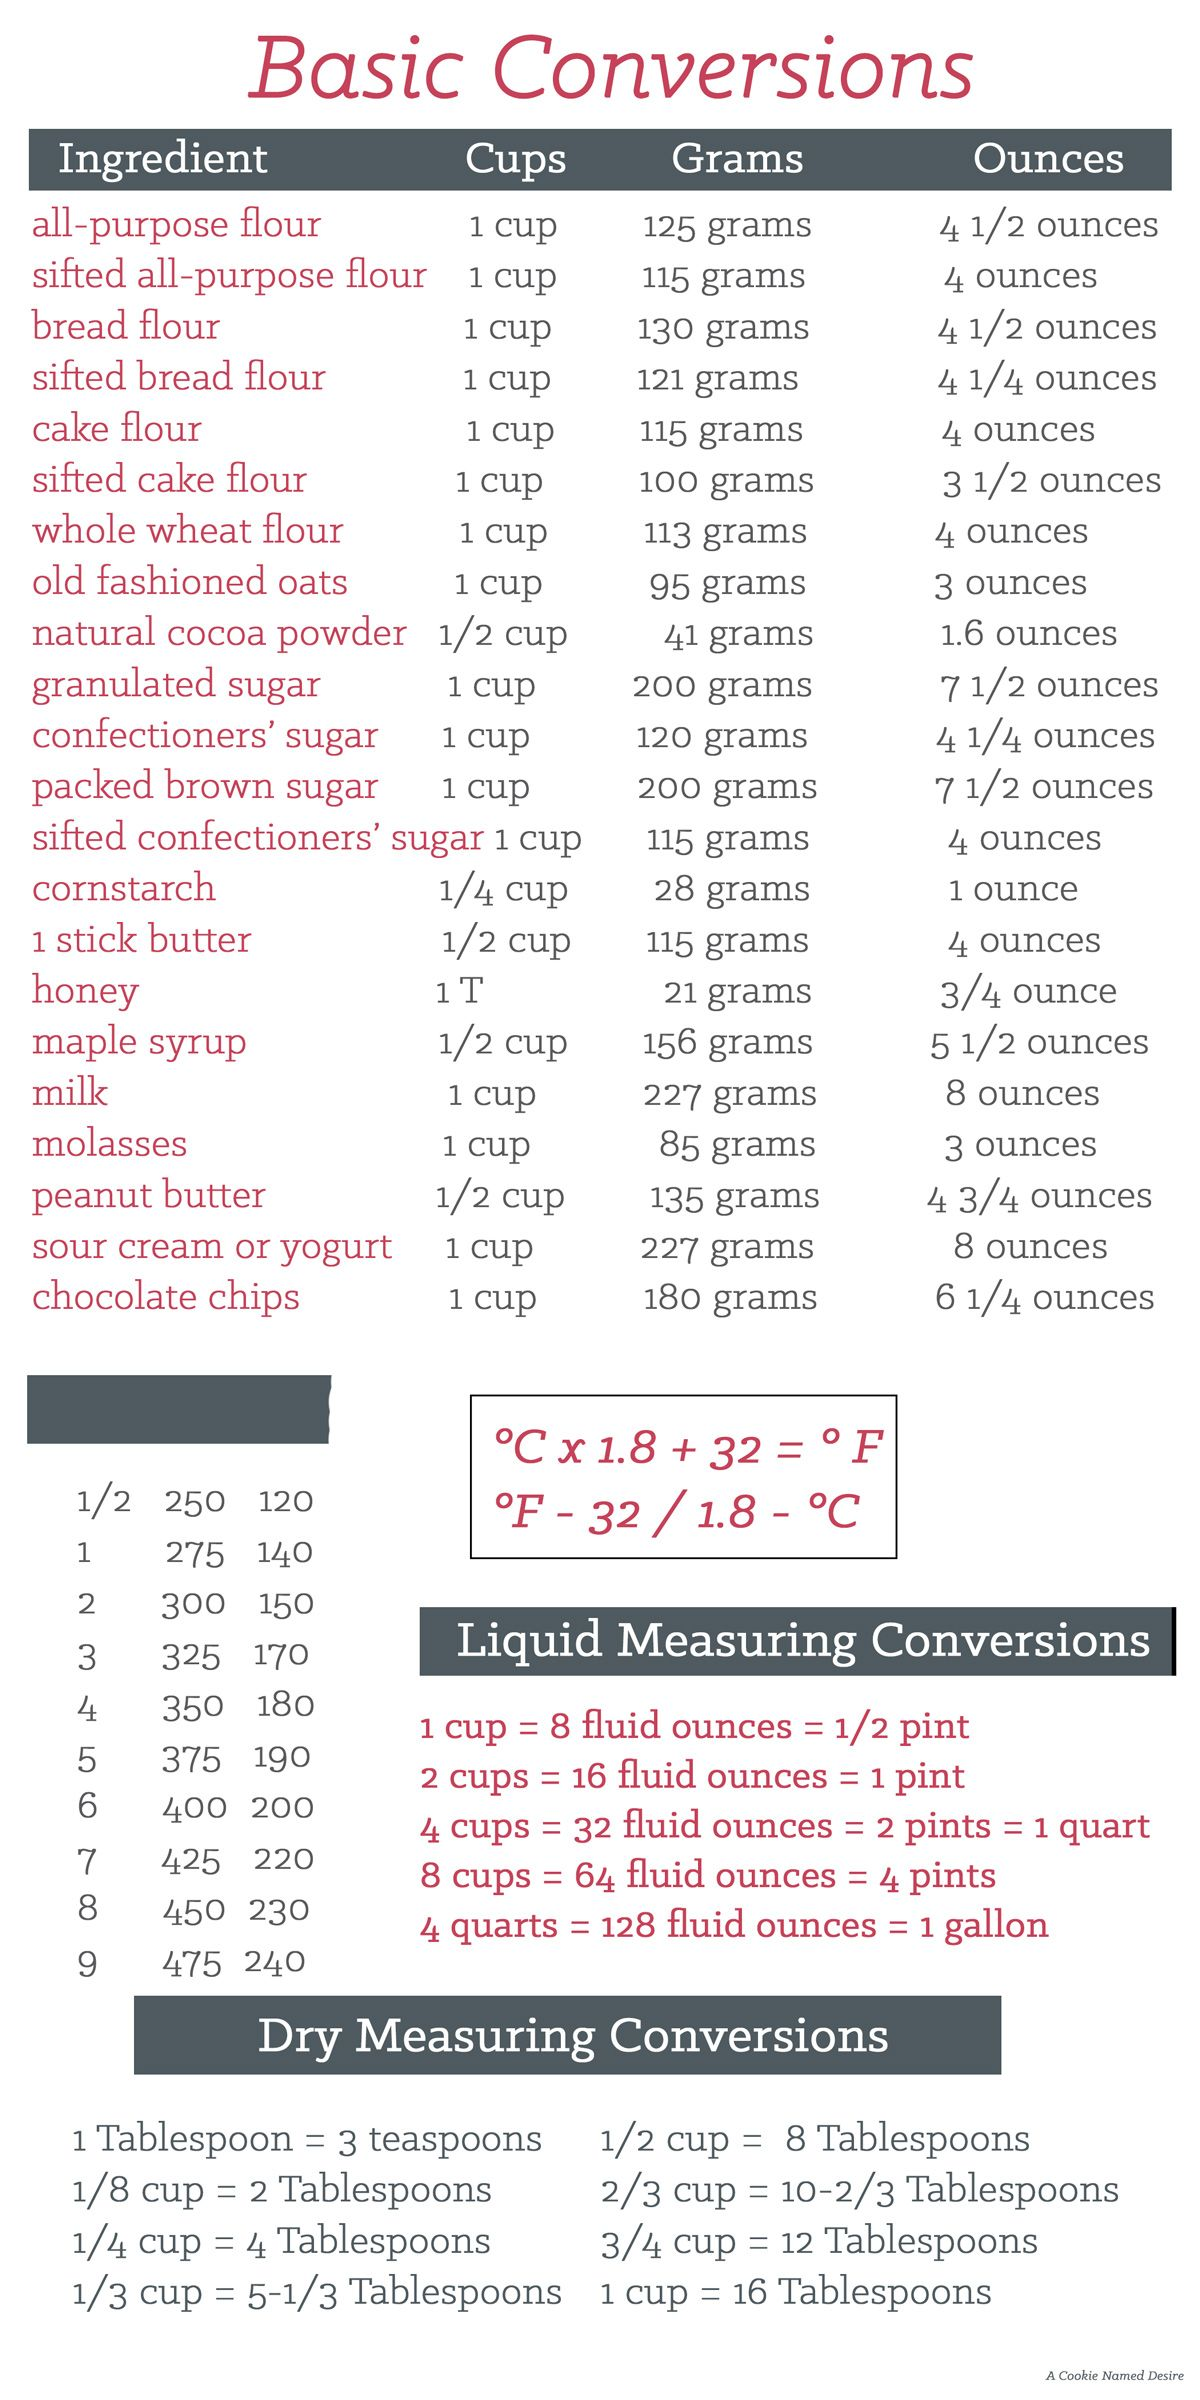 Kitchen cheat sheet cheat sheets kitchen cheat sheets and kitchens i found this kitchen cheat sheet that i thought you would find useful too nvjuhfo Choice Image